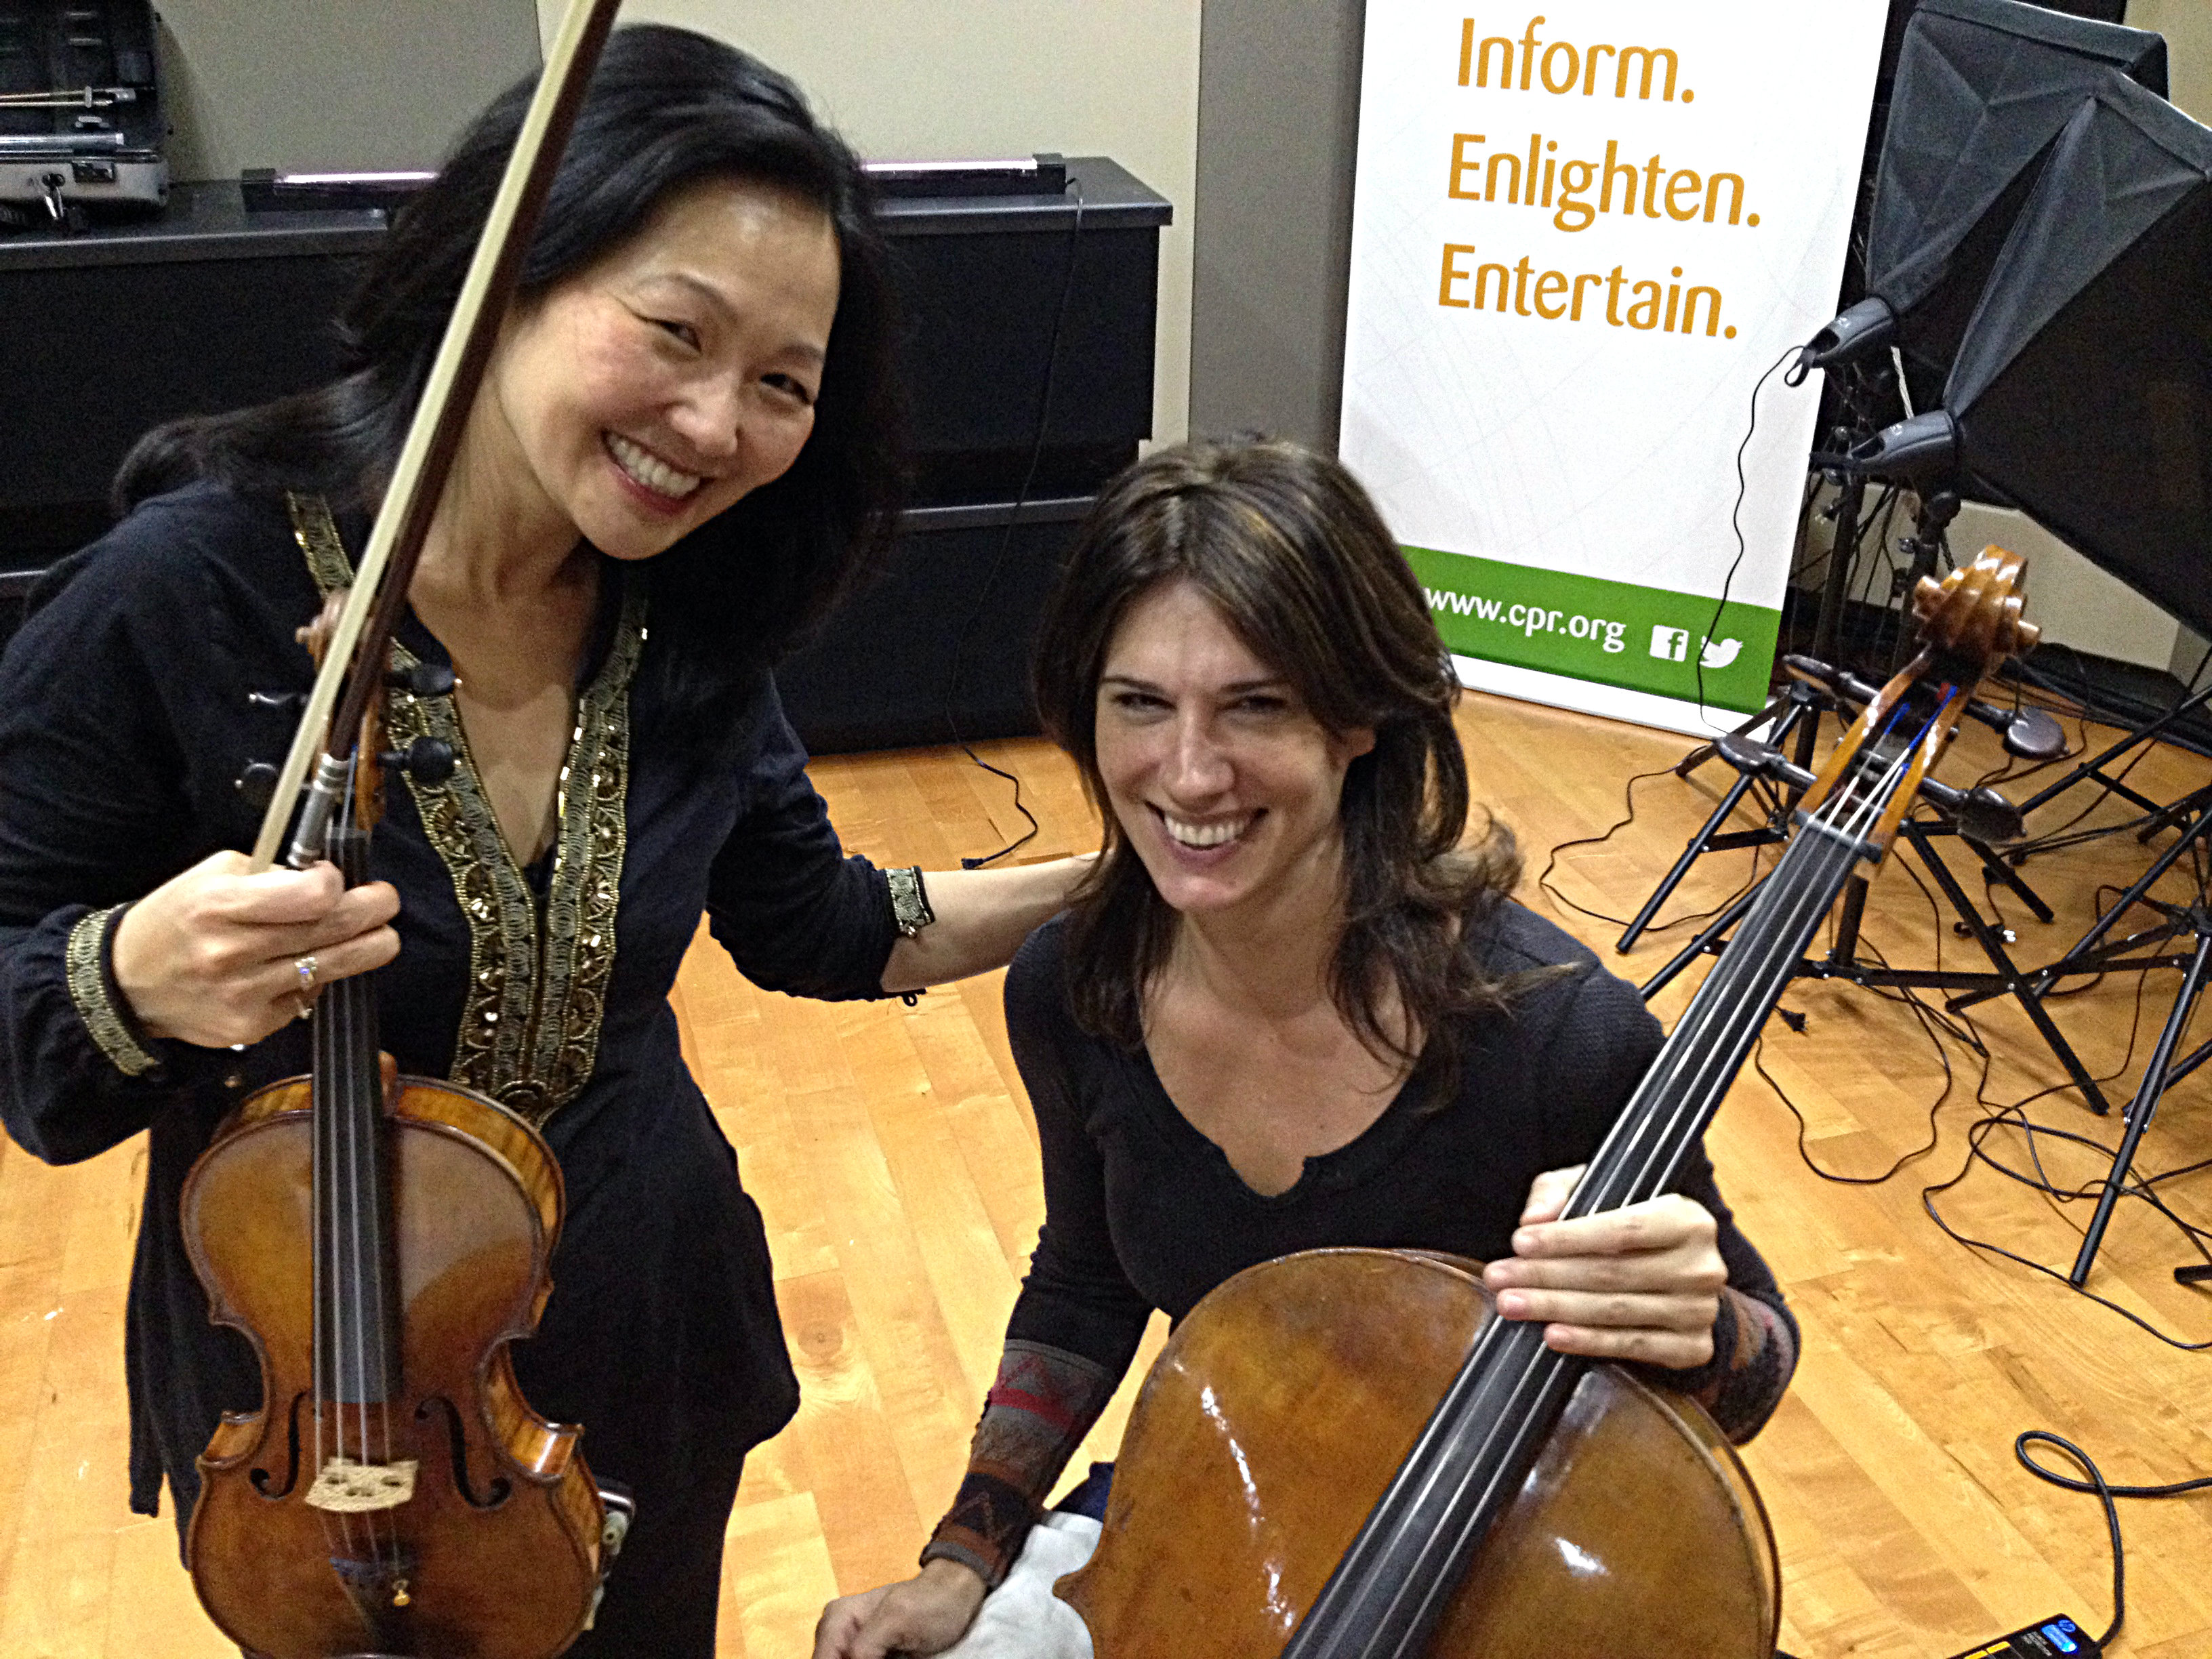 <p>Former classmates and now co-soloists: Colorado Symphony concertmaster Yumi Hwang-Williams and cellist Wendy Sutter in the CPR Performance Studio.</p>